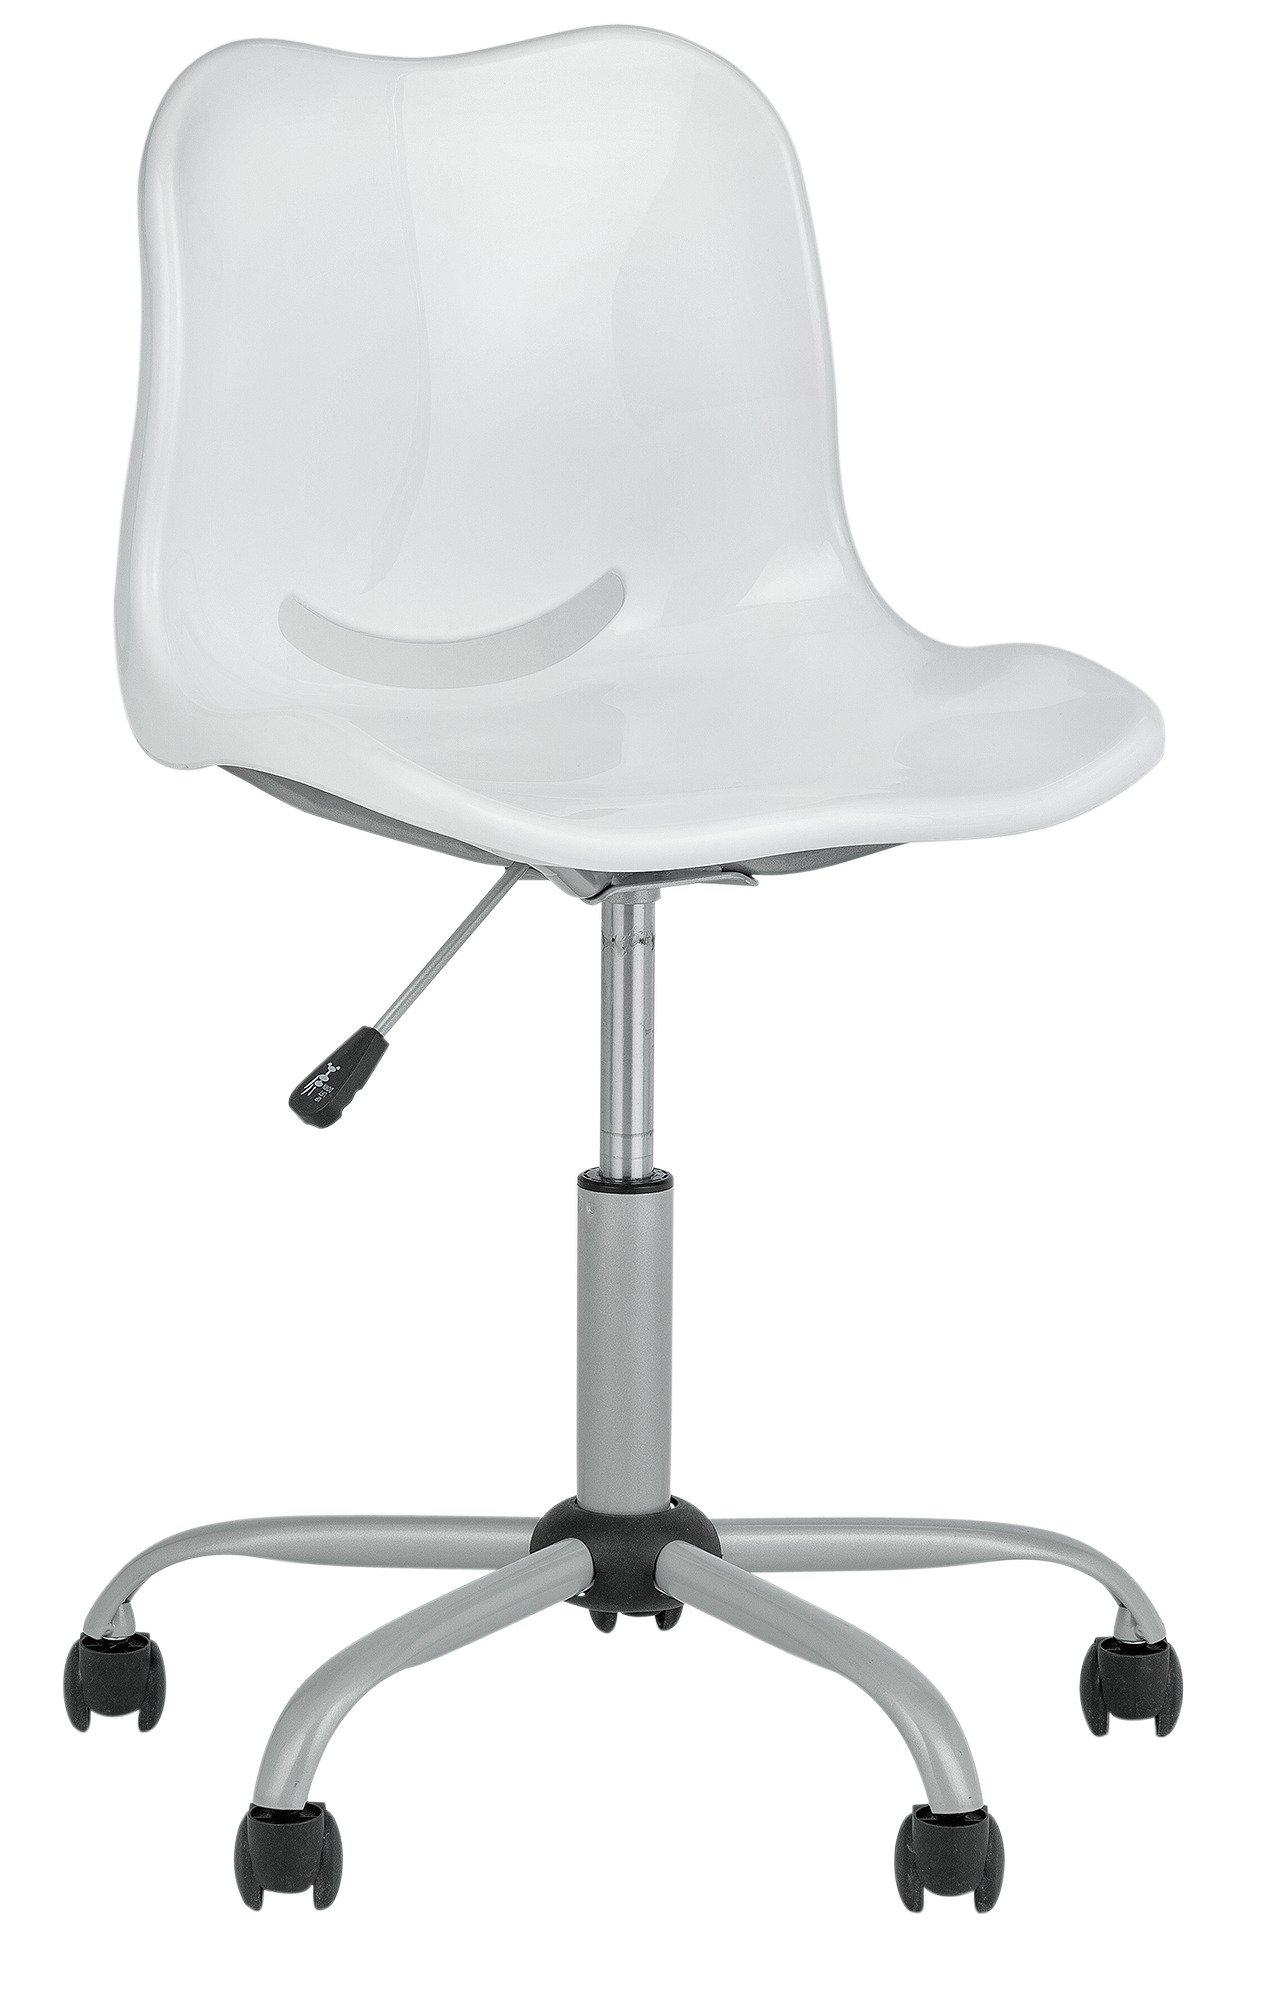 more details on home delta height adjustable office chair white - White Armless Office Chair